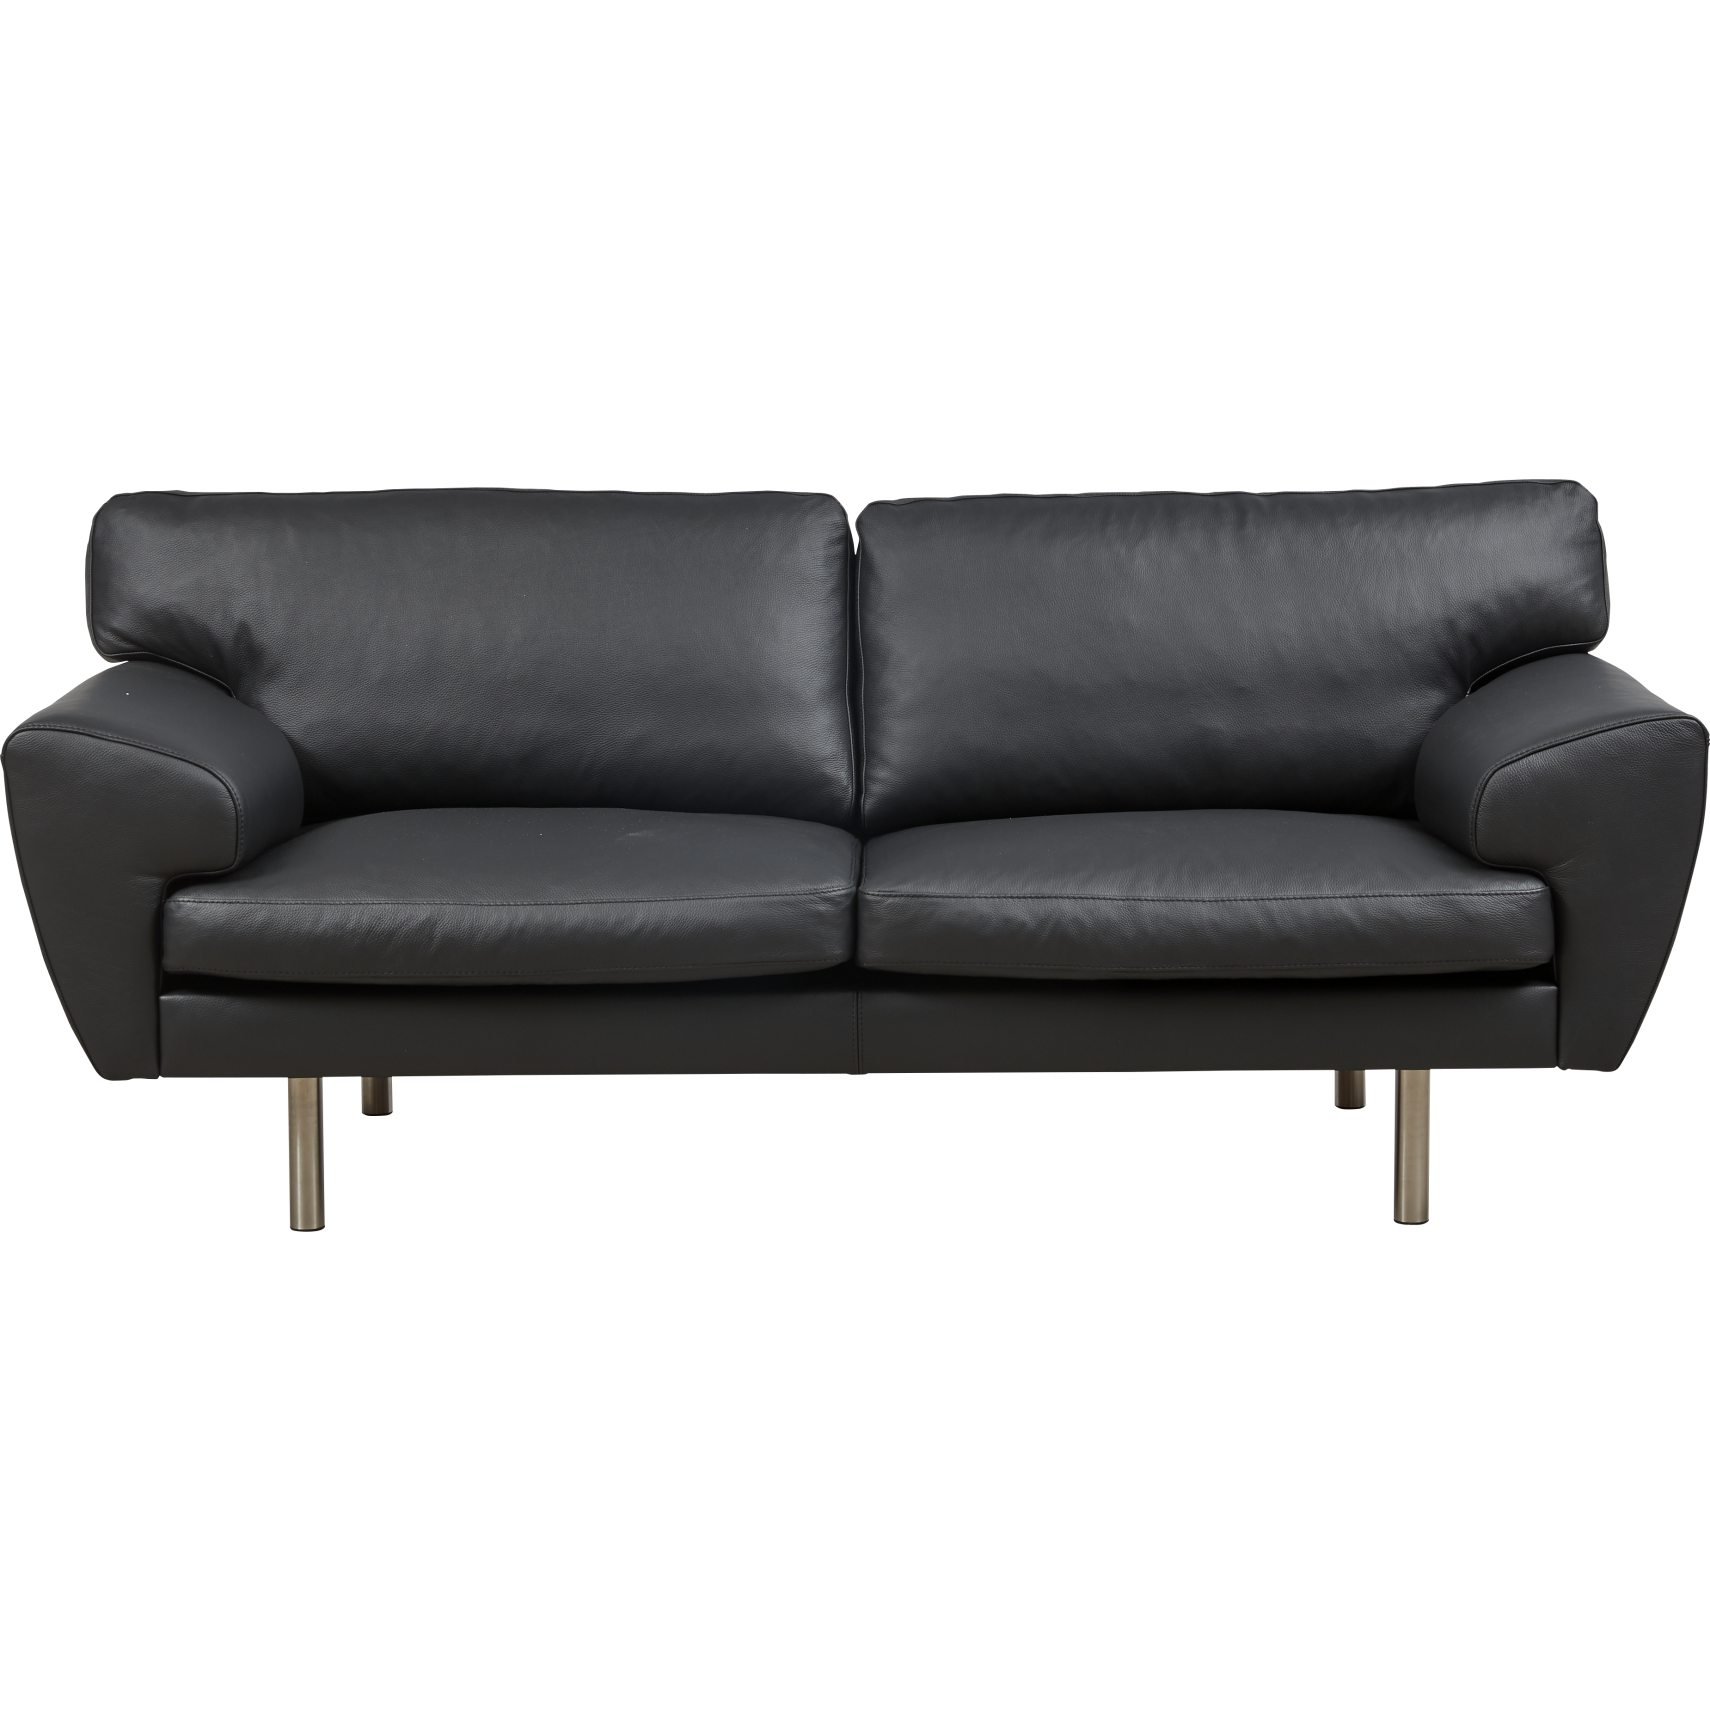 sofa tilbud k b en billig sofa p udsalg hos ilva. Black Bedroom Furniture Sets. Home Design Ideas